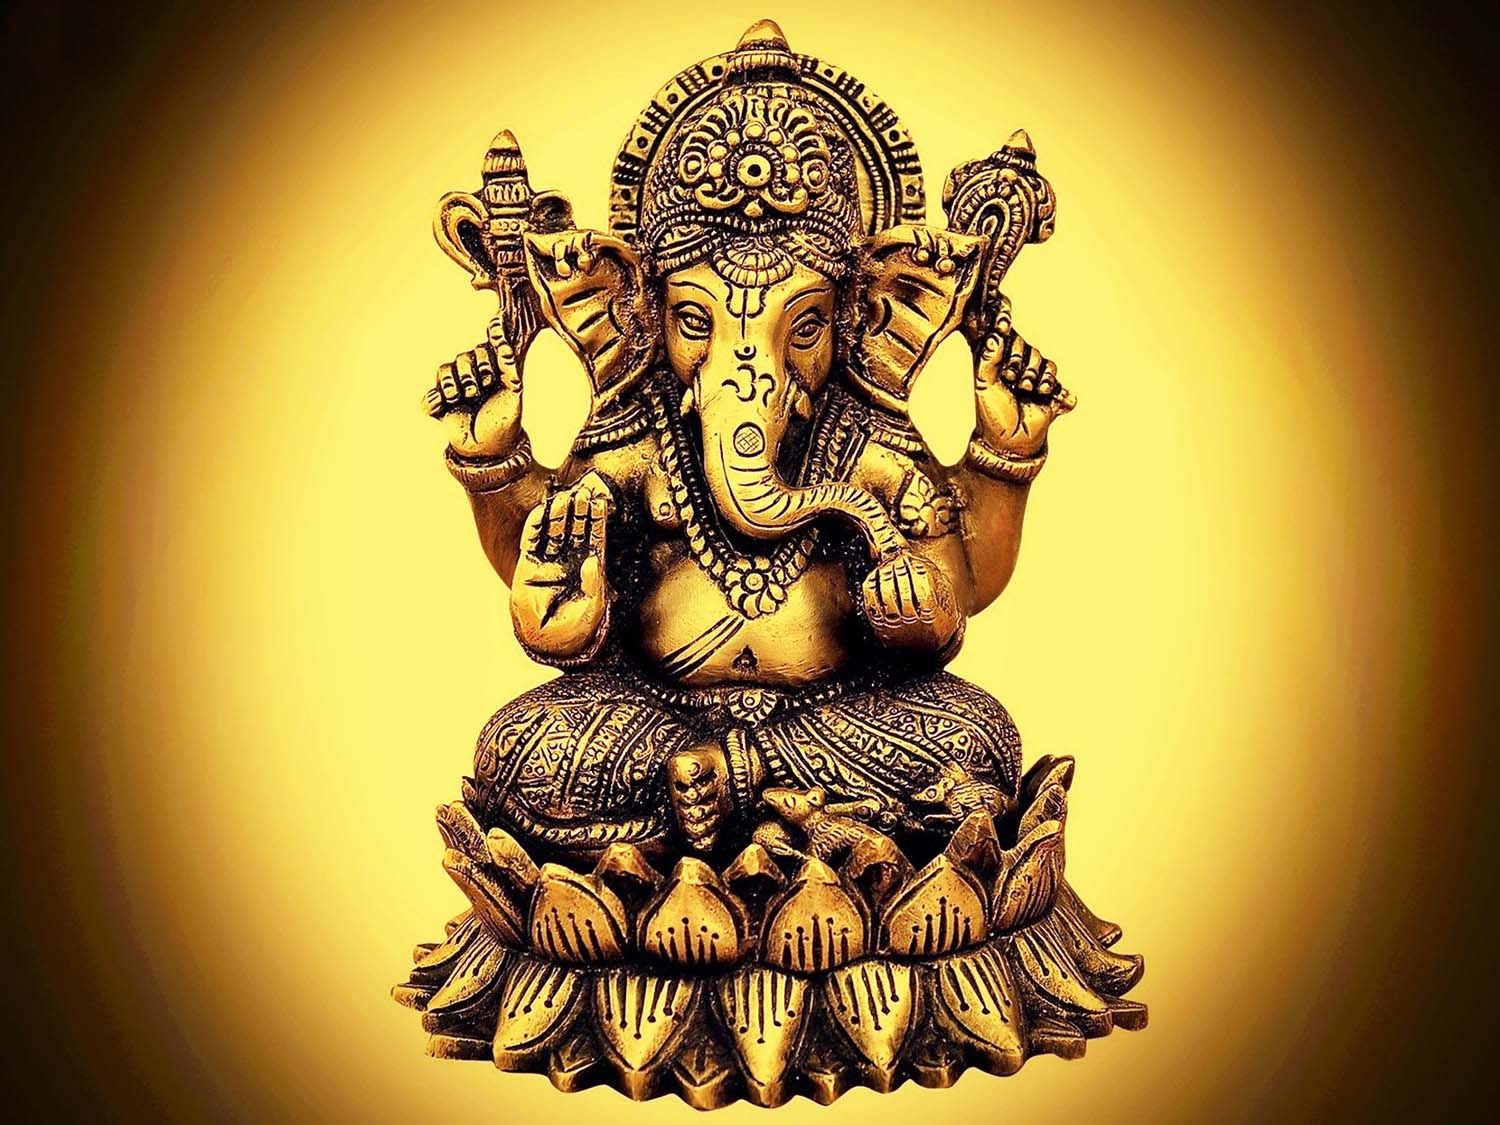 Lord ganesha images hd to download!